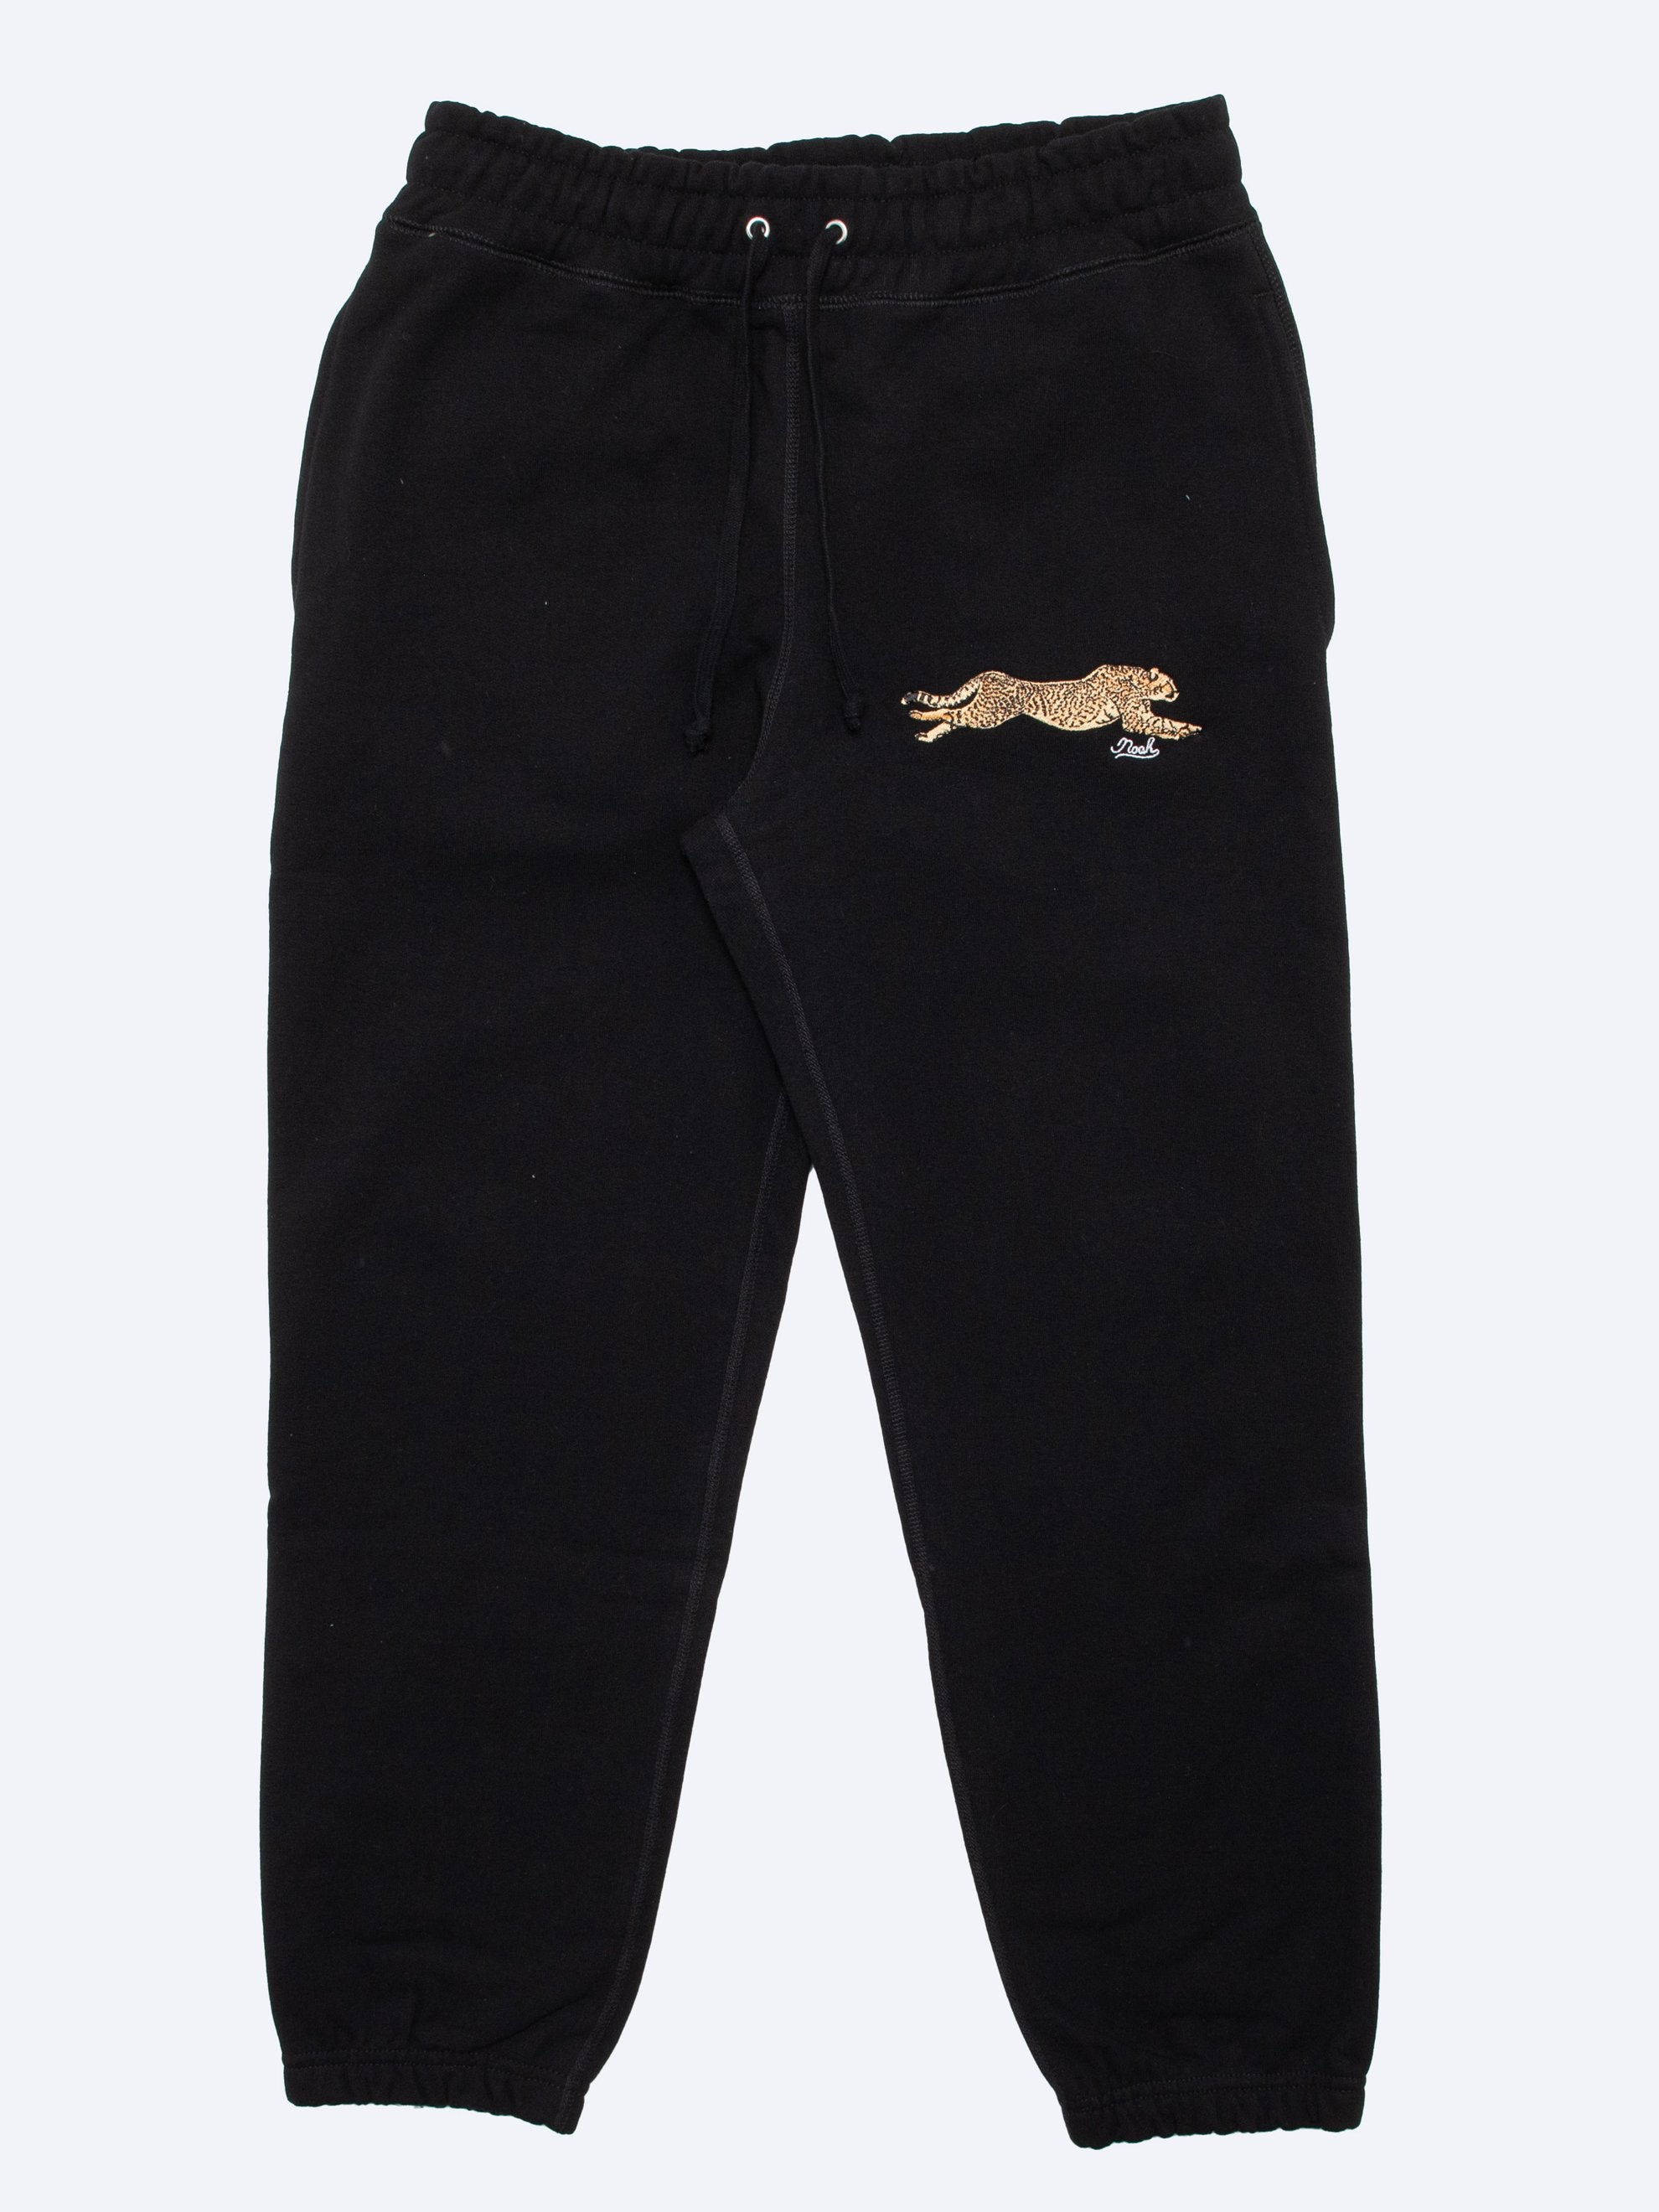 Black Cheetah Sweatpants 1